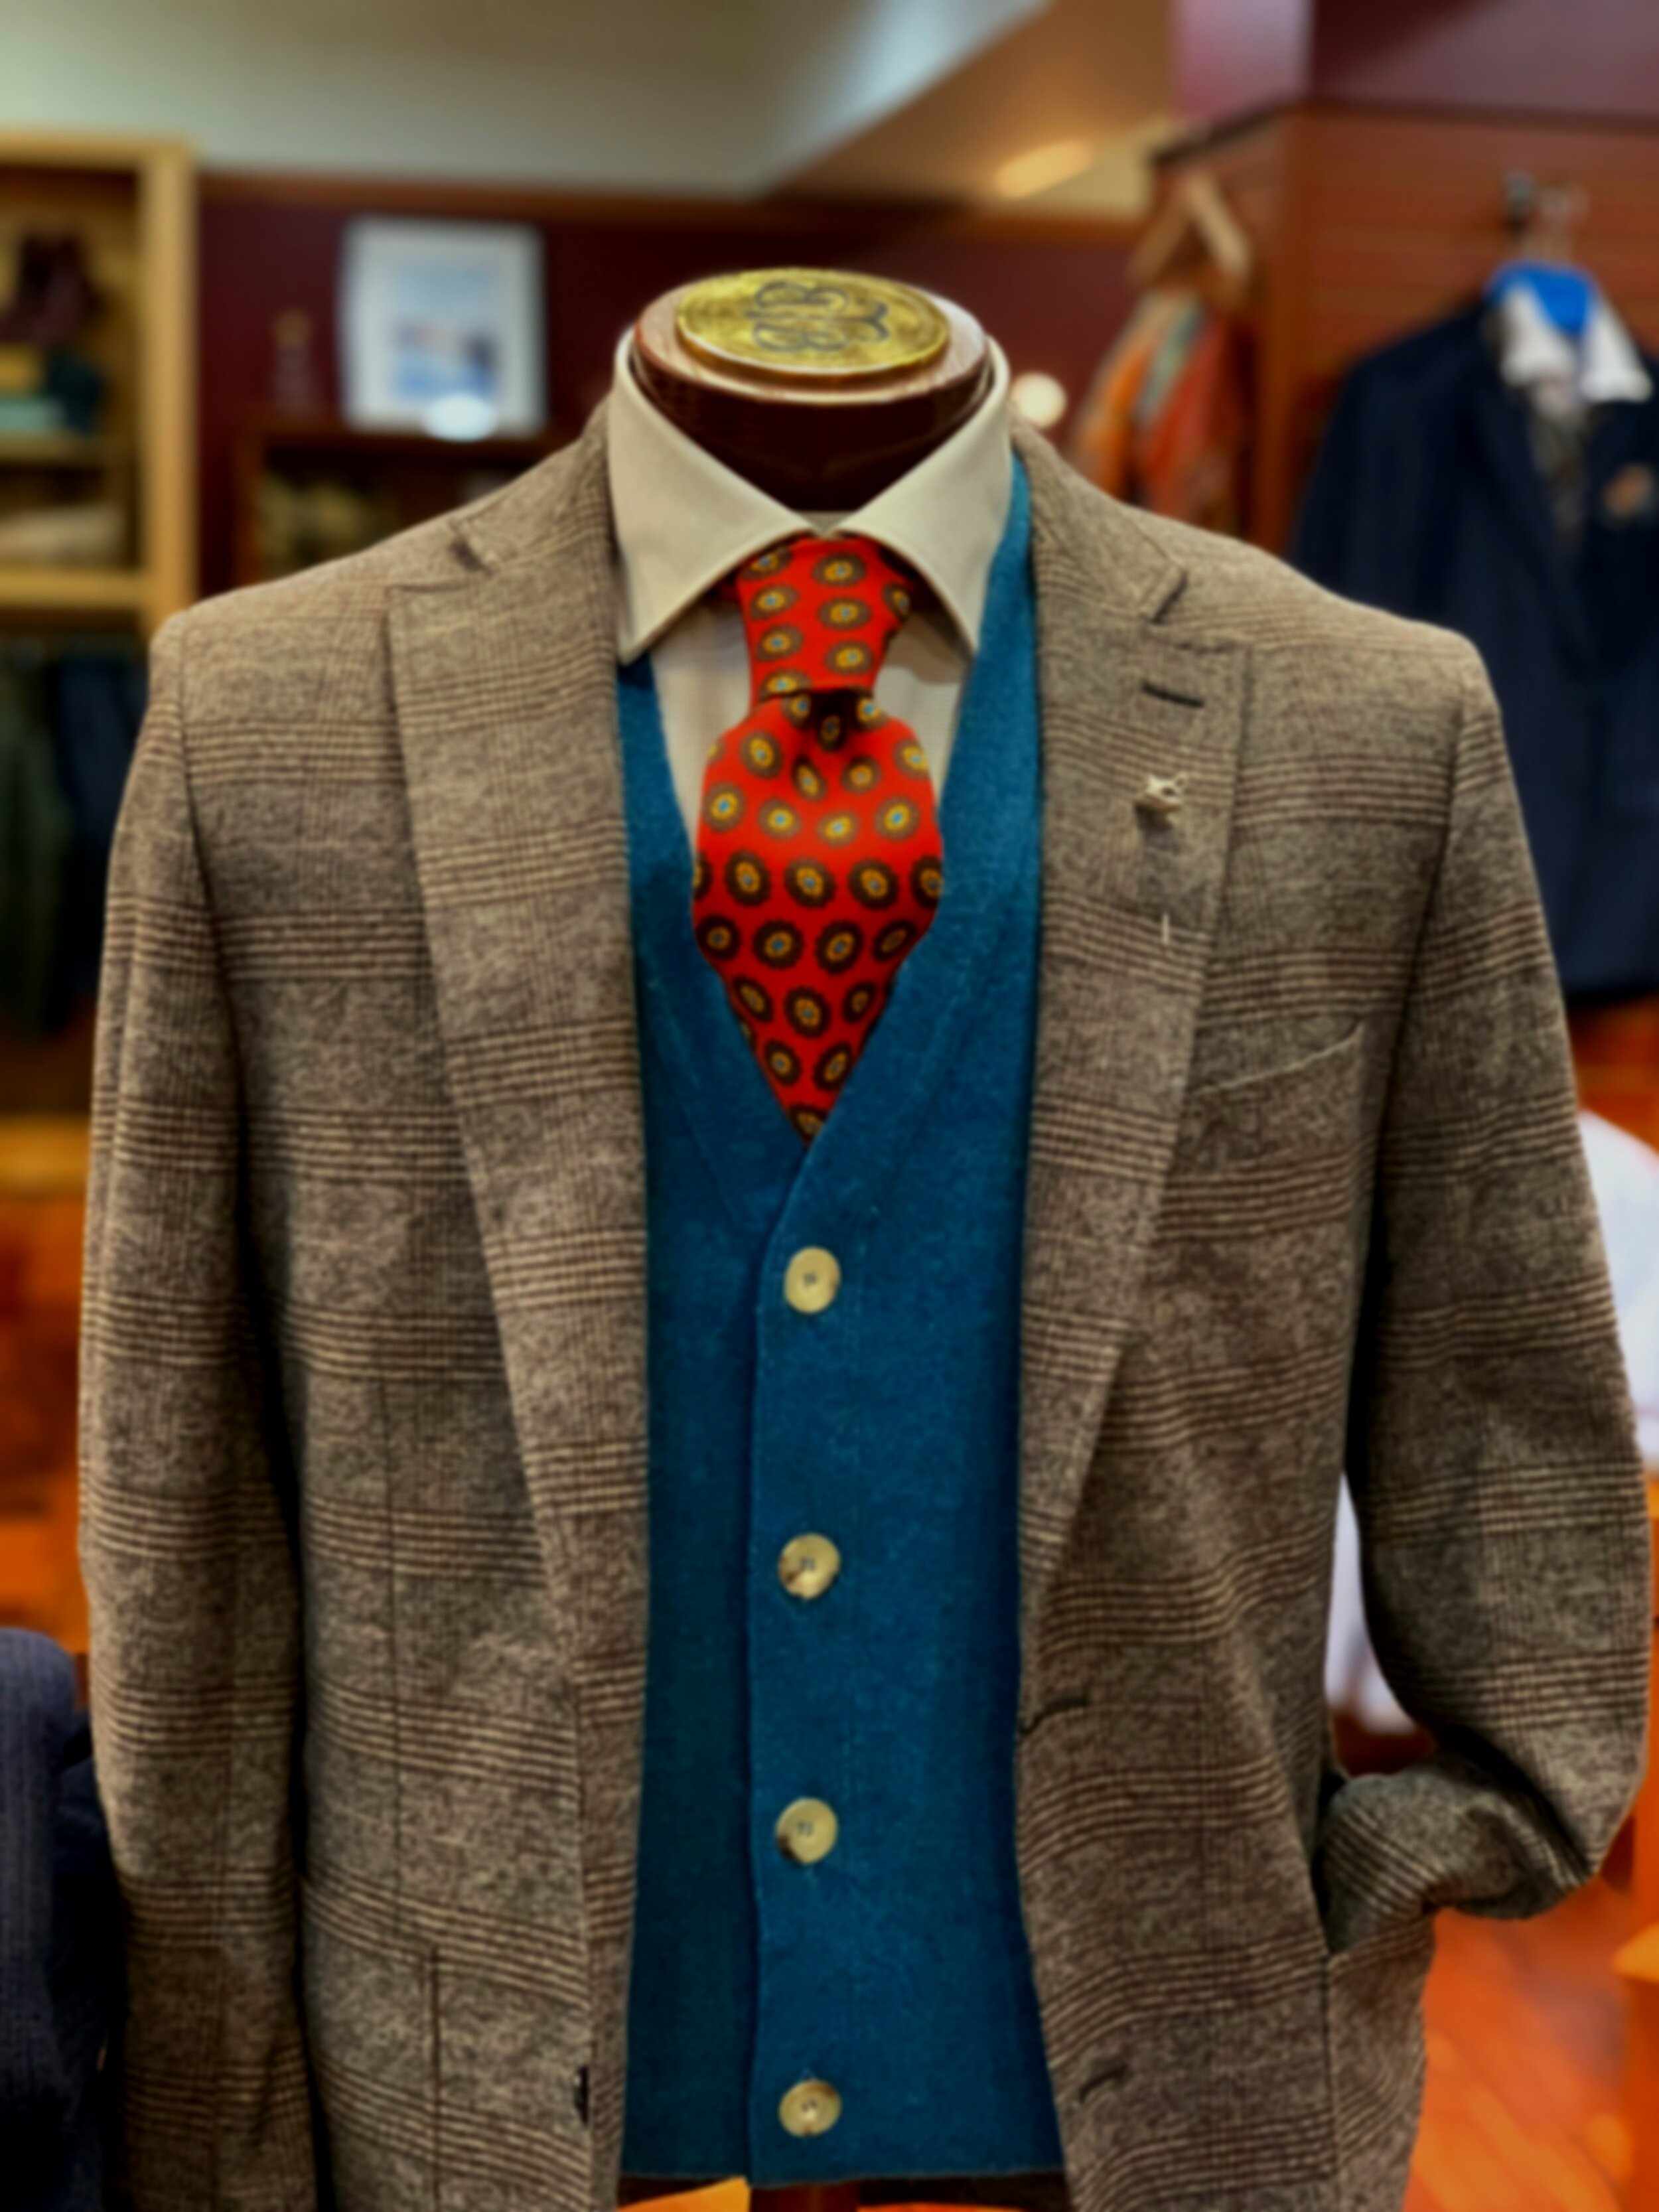 PB Sports Coat, Drake's Sweater Vest, Drake's tie, Stenströms Dress Shirt, Seaward and Stearn Fox Label Pin